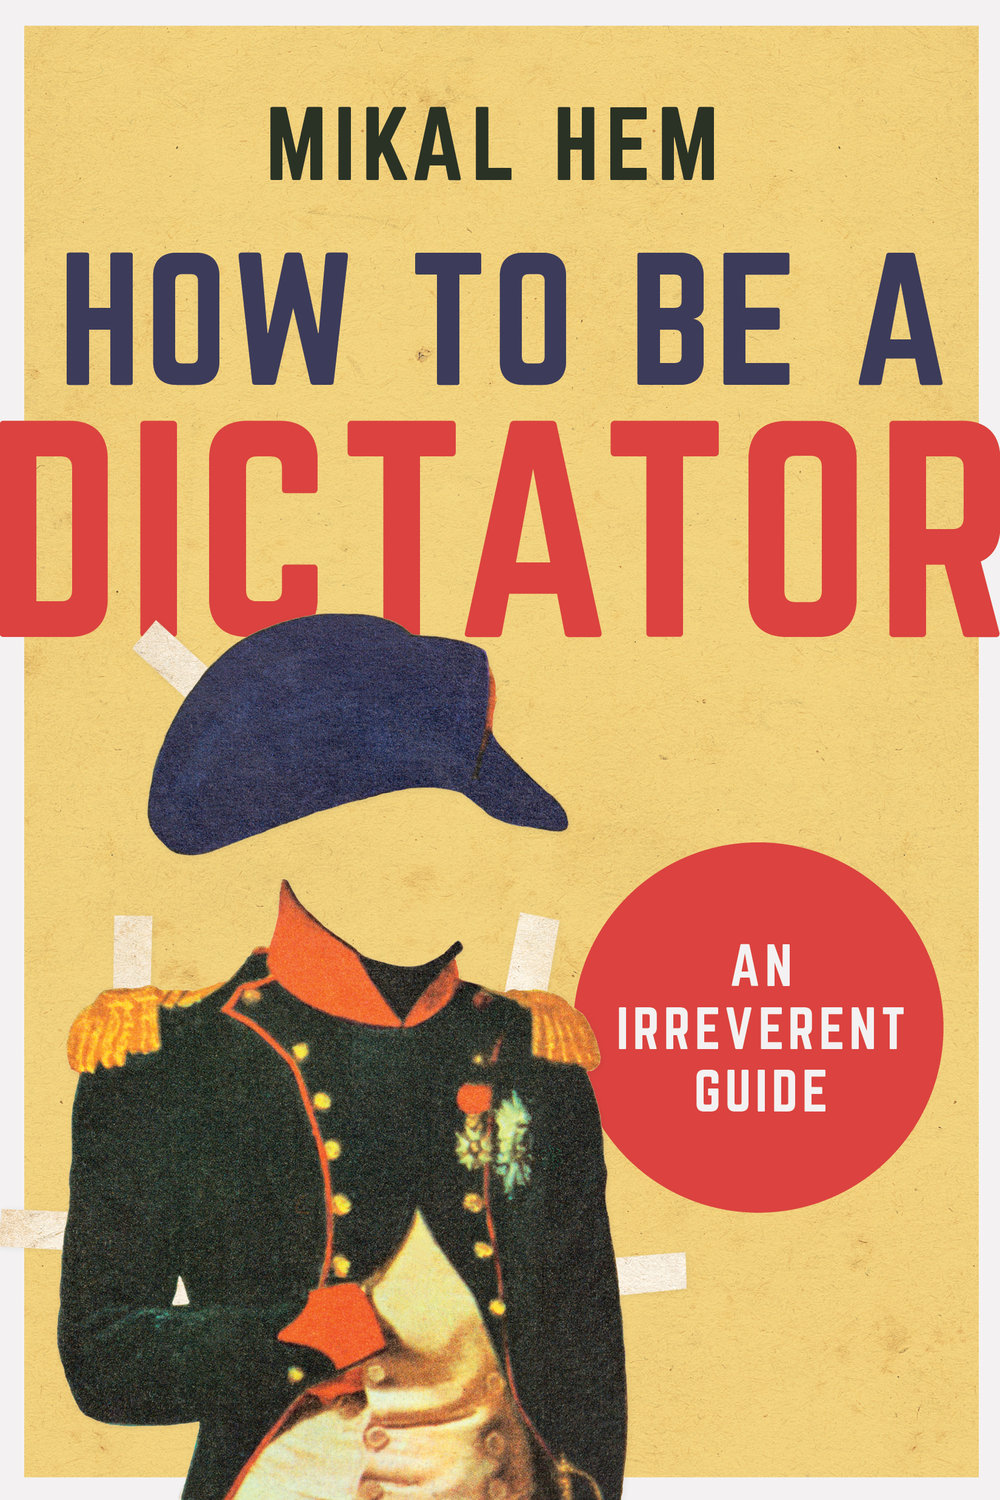 How-to-Be-a-Dictator.jpg